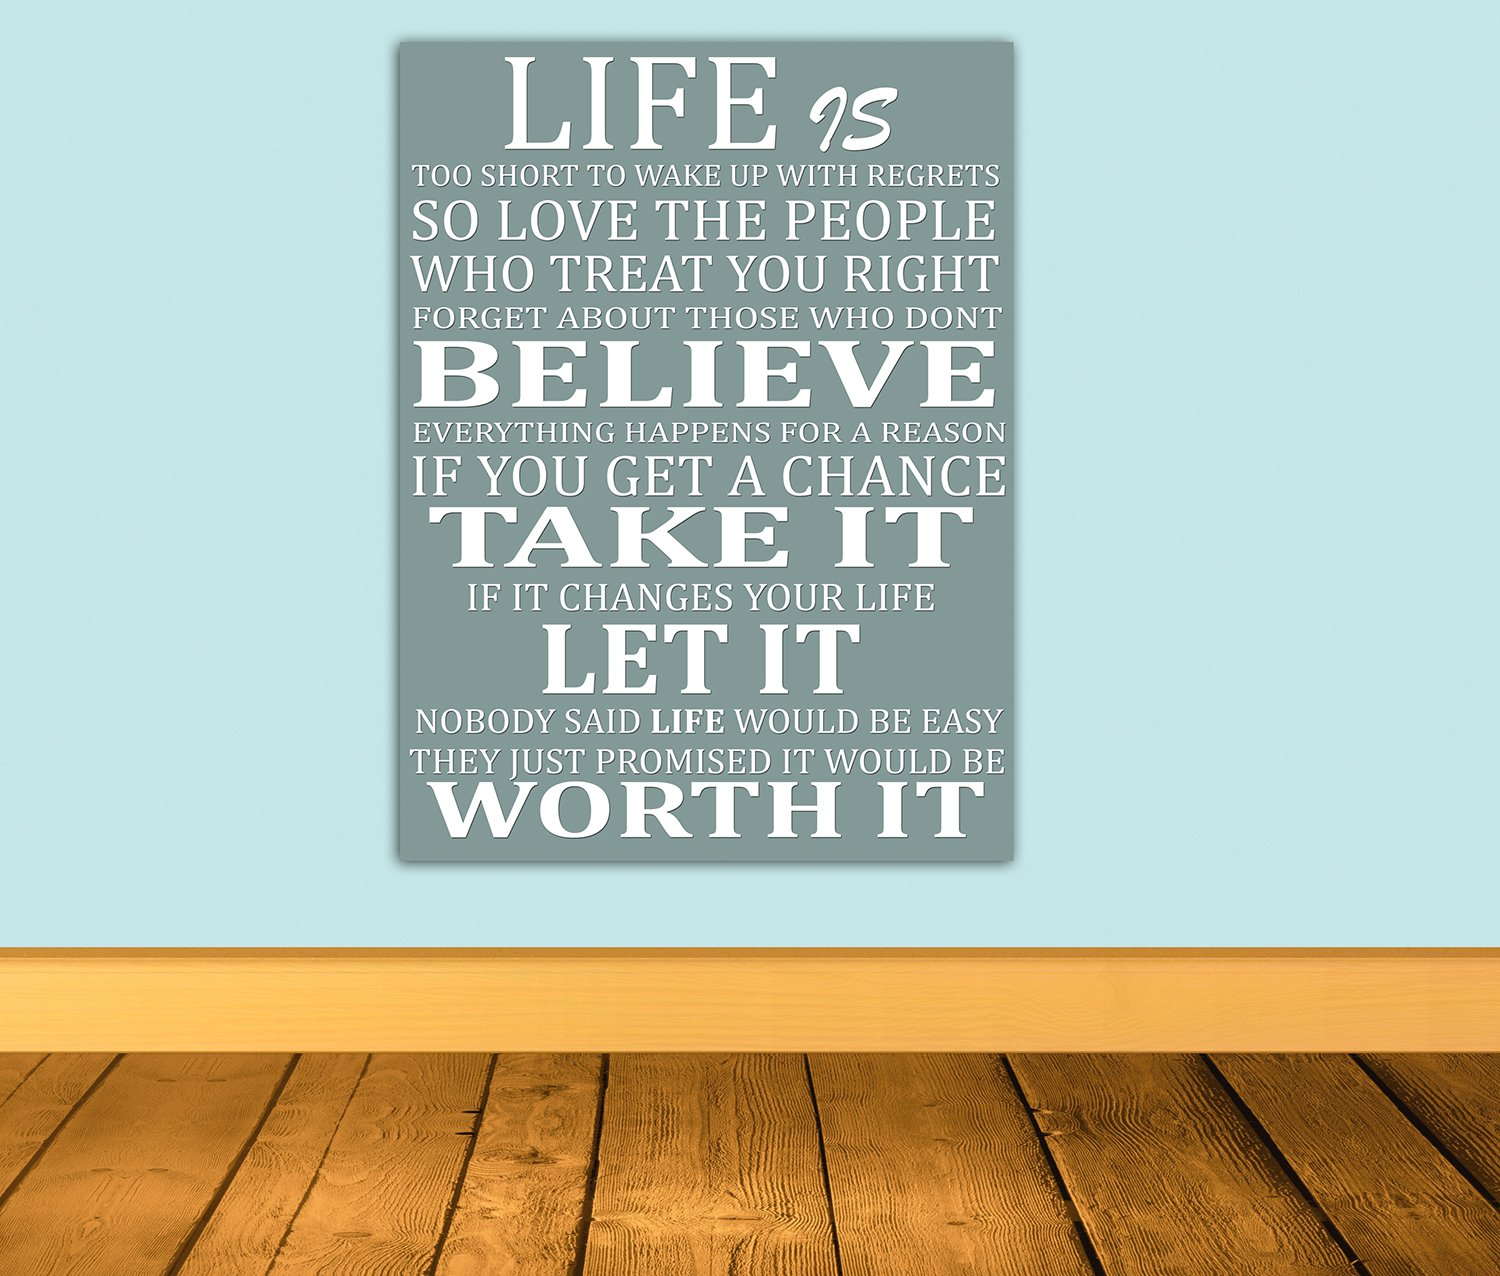 Life Is Too Short Quote   Wall Art Box Canvas   Grey A3 12x16 Inch